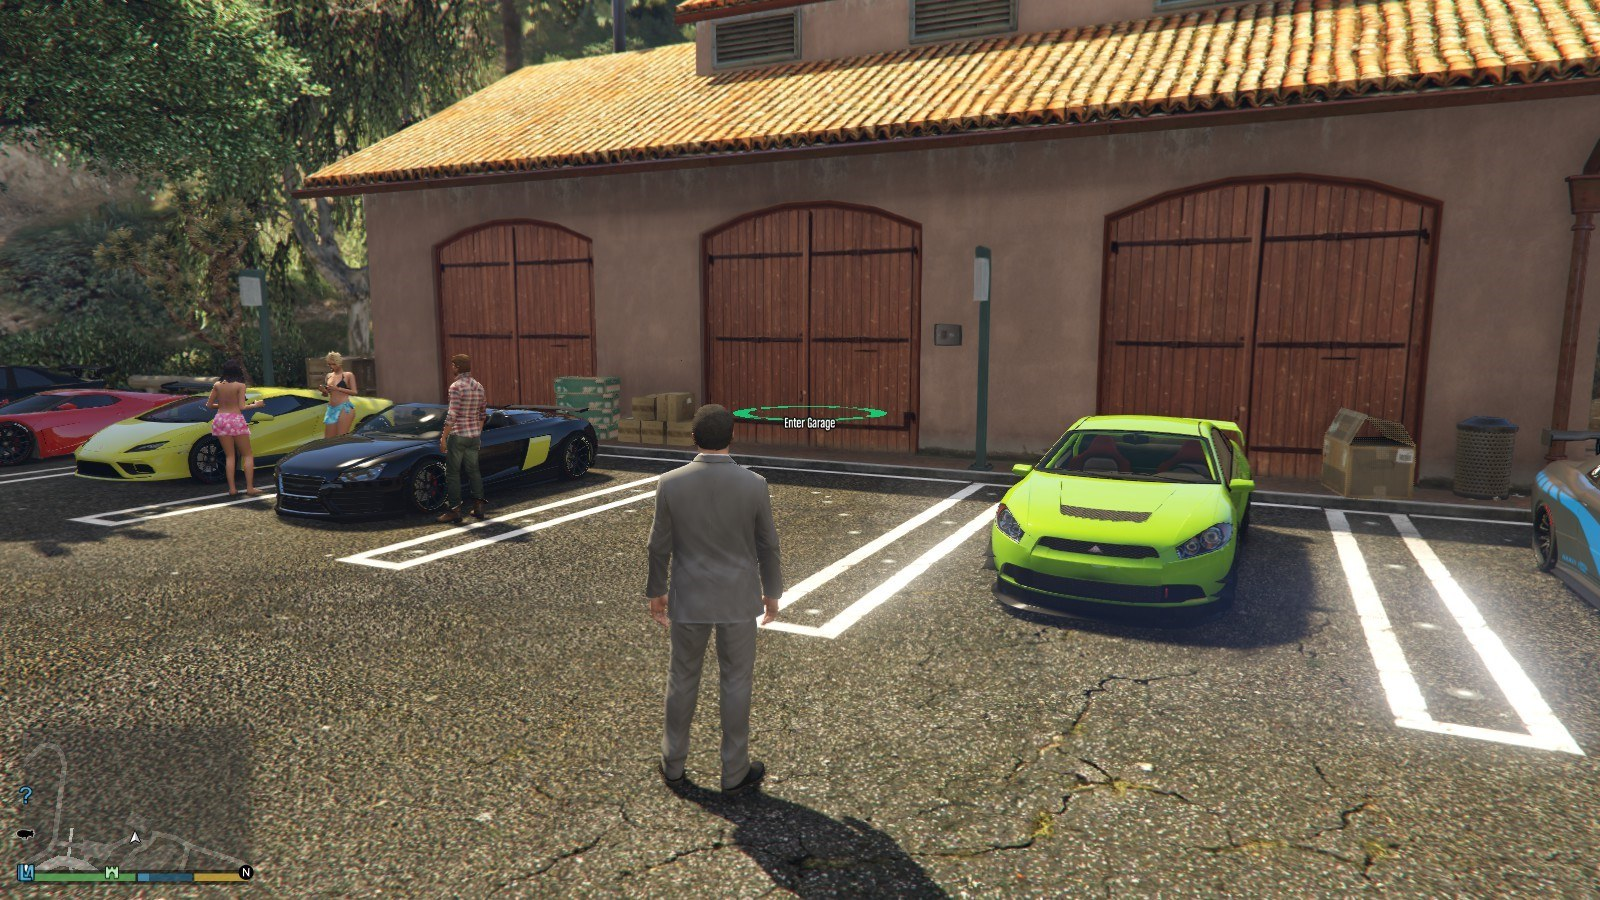 Marlow Village Luxury Safehouse GTA5 Mods 09